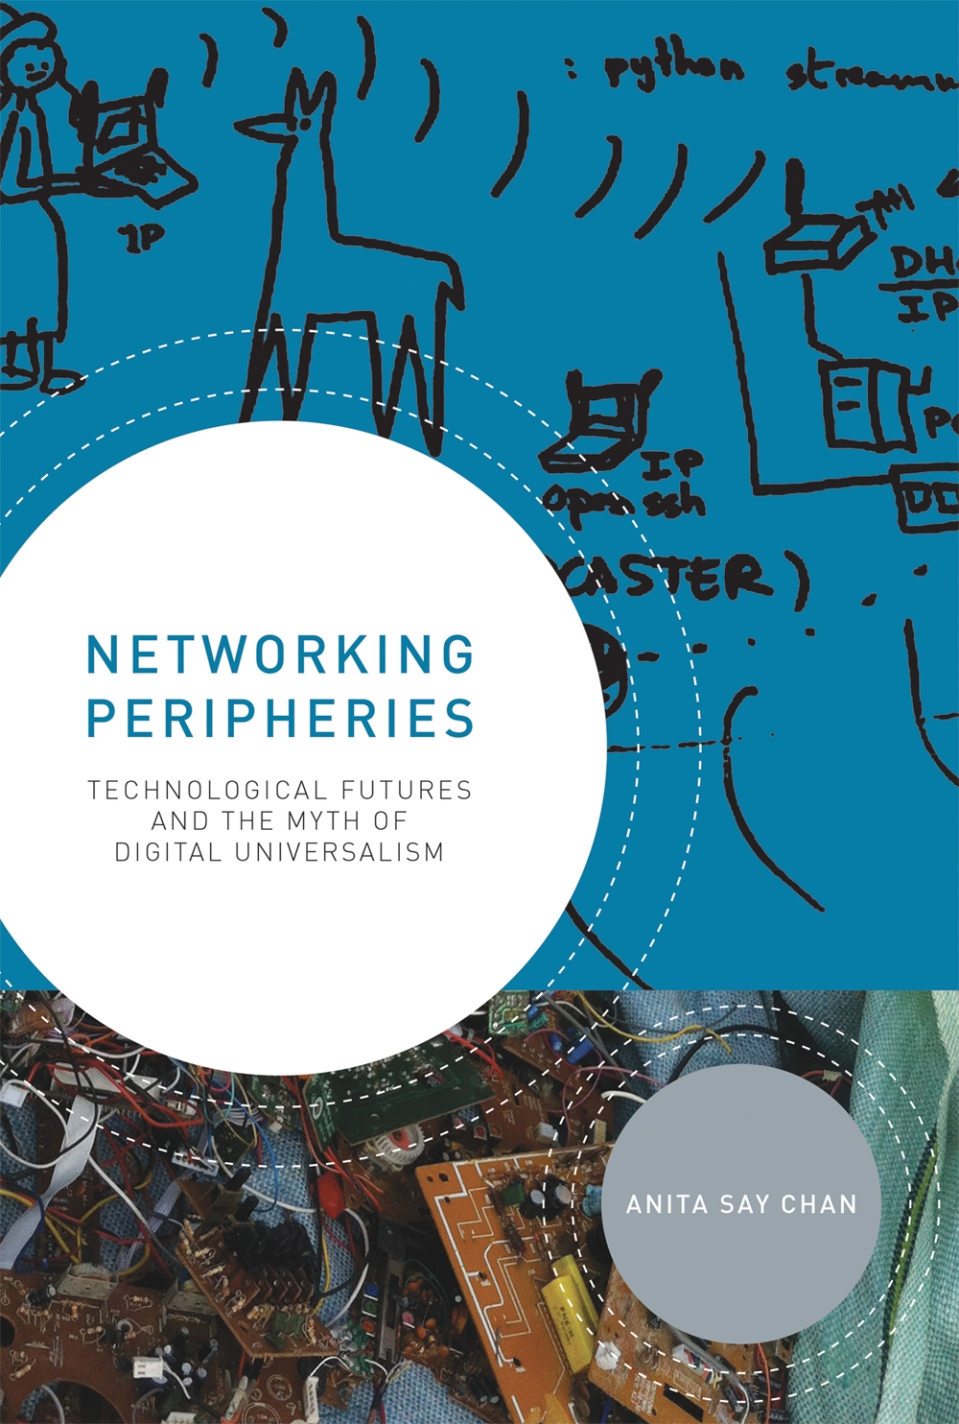 networking-peripheries-technological-futures-and-the-myth-of-digital-universalism